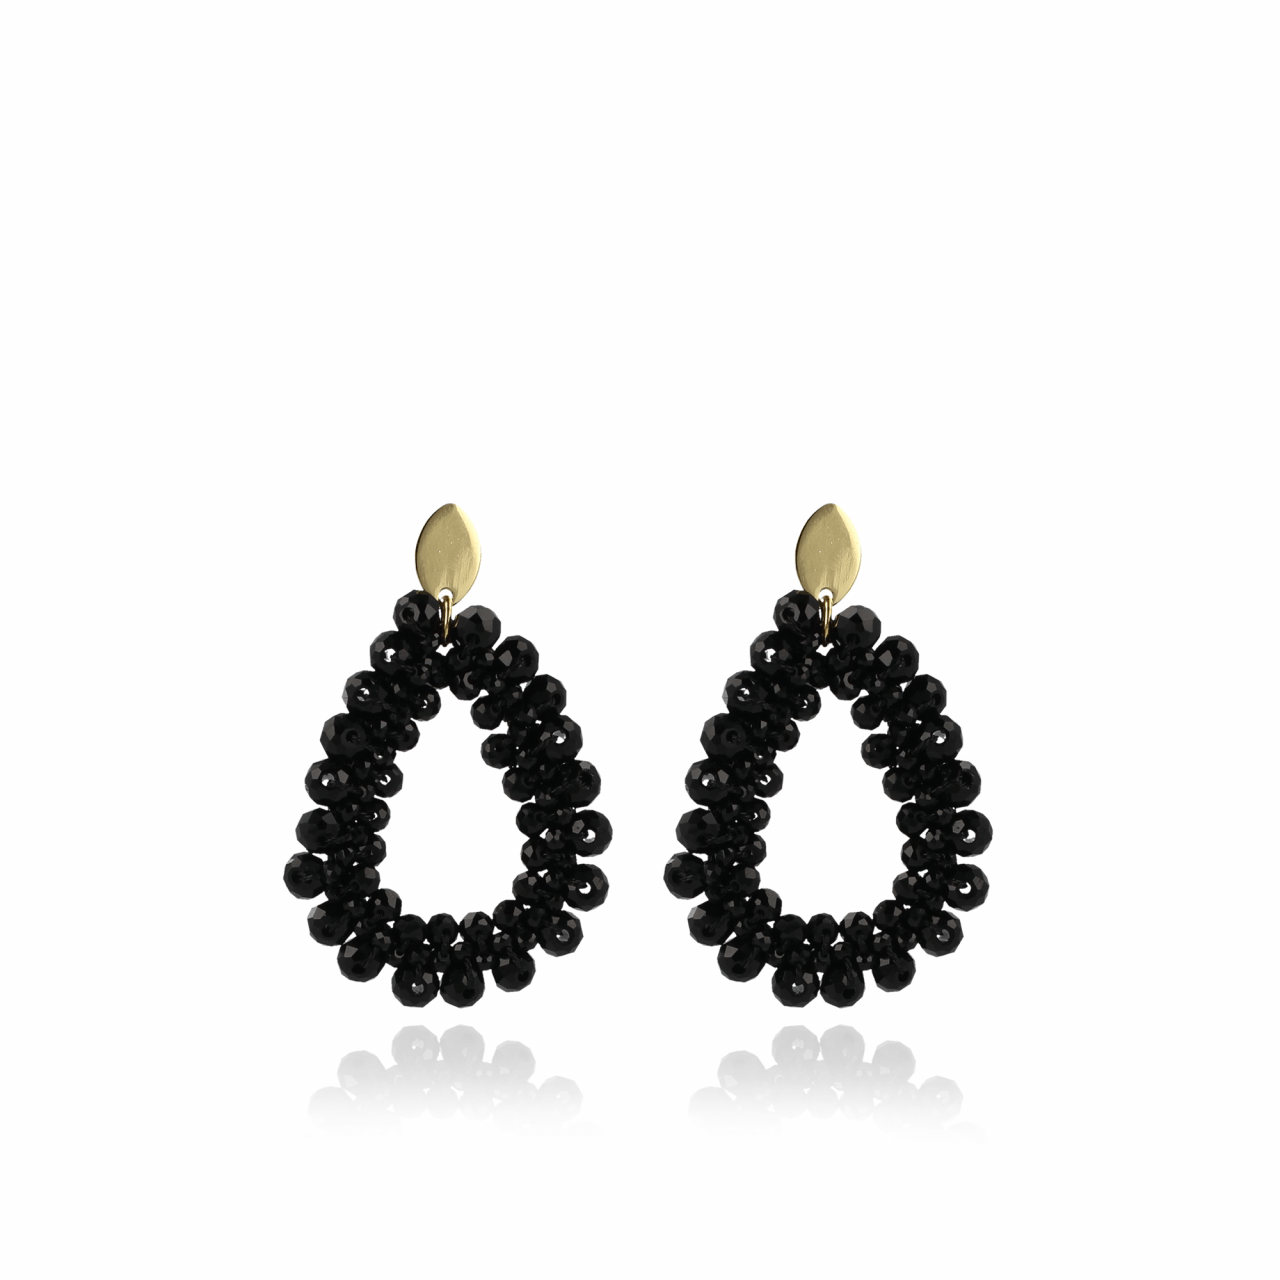 Black glassberry Peyote drop earrings gold